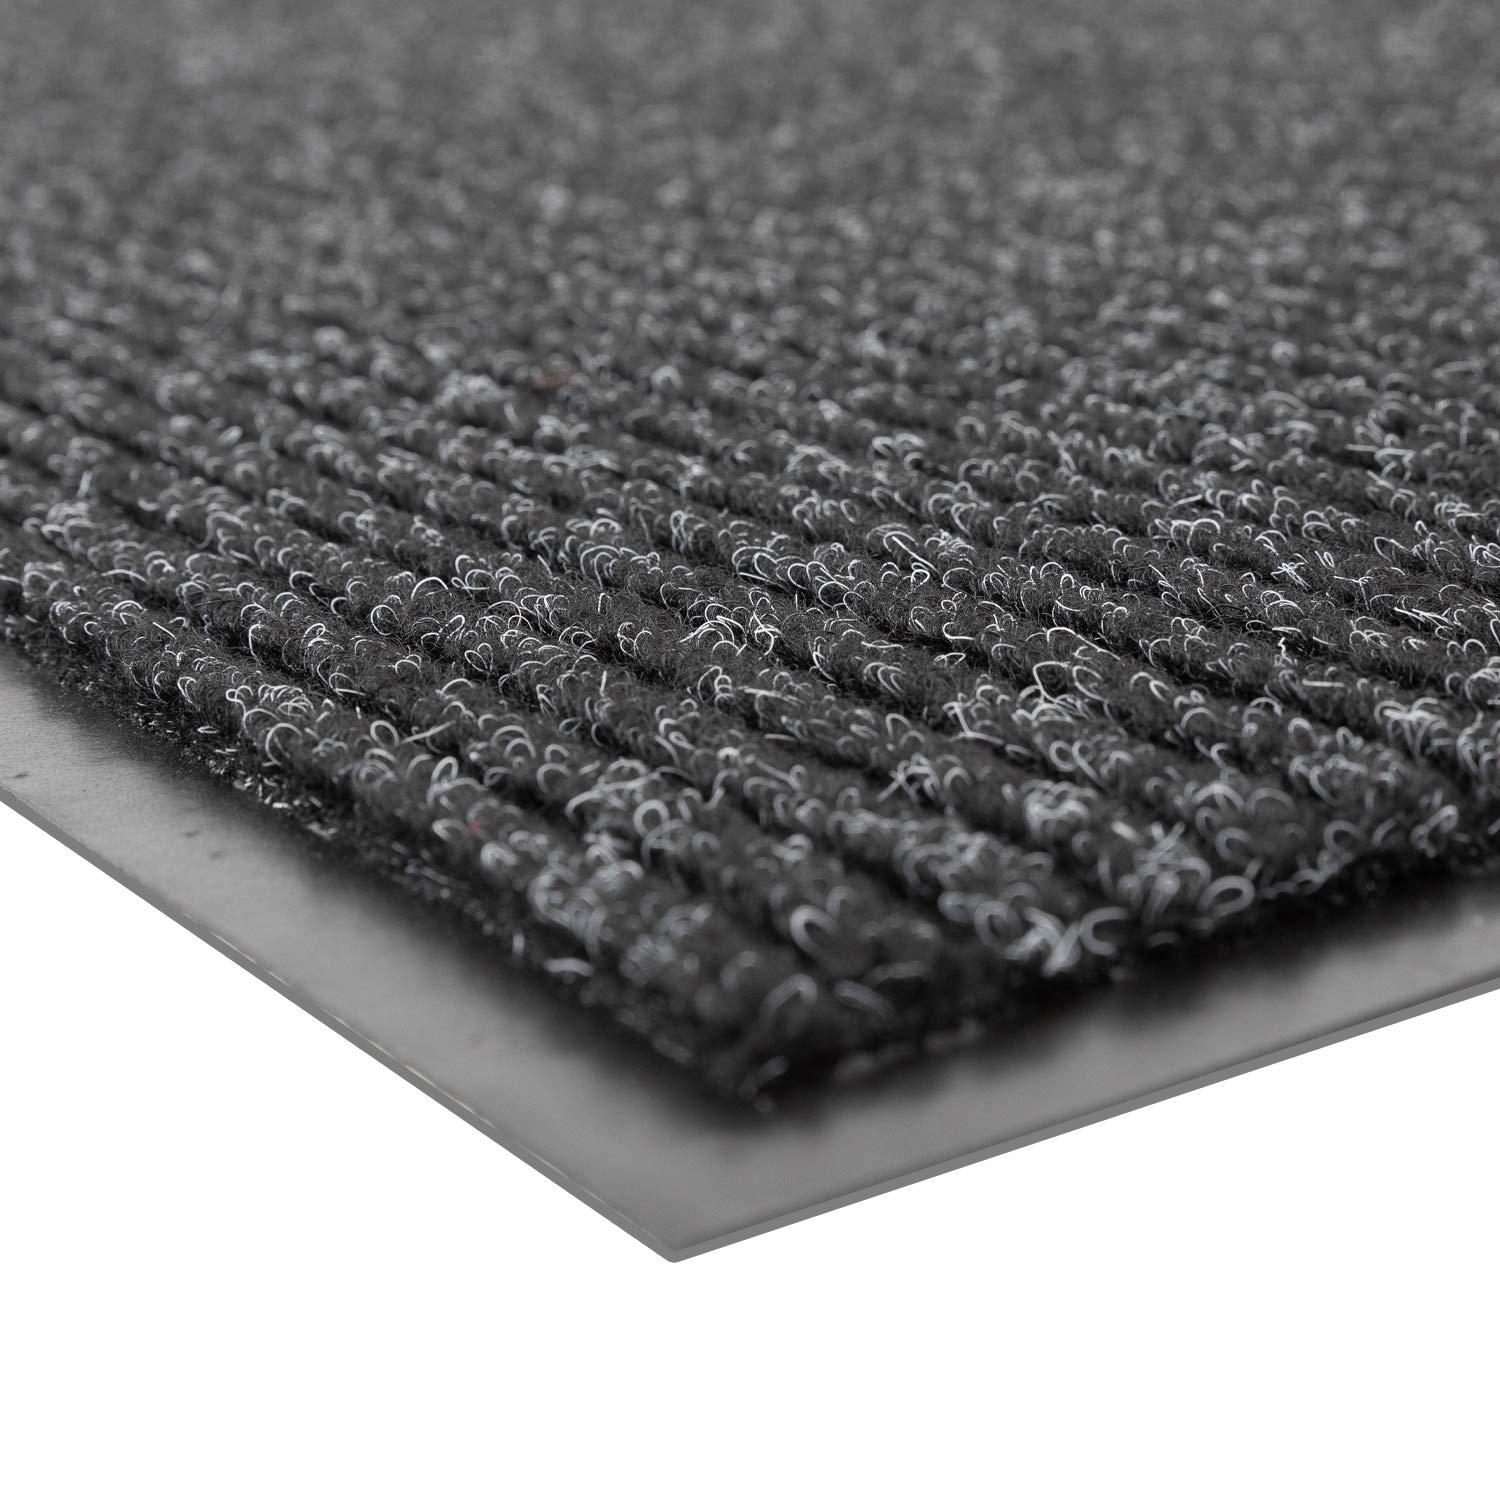 Notrax 109S0023CH 109 Brush Step Entrance Mat, For Home or Office, 2' X 3' Charcoal